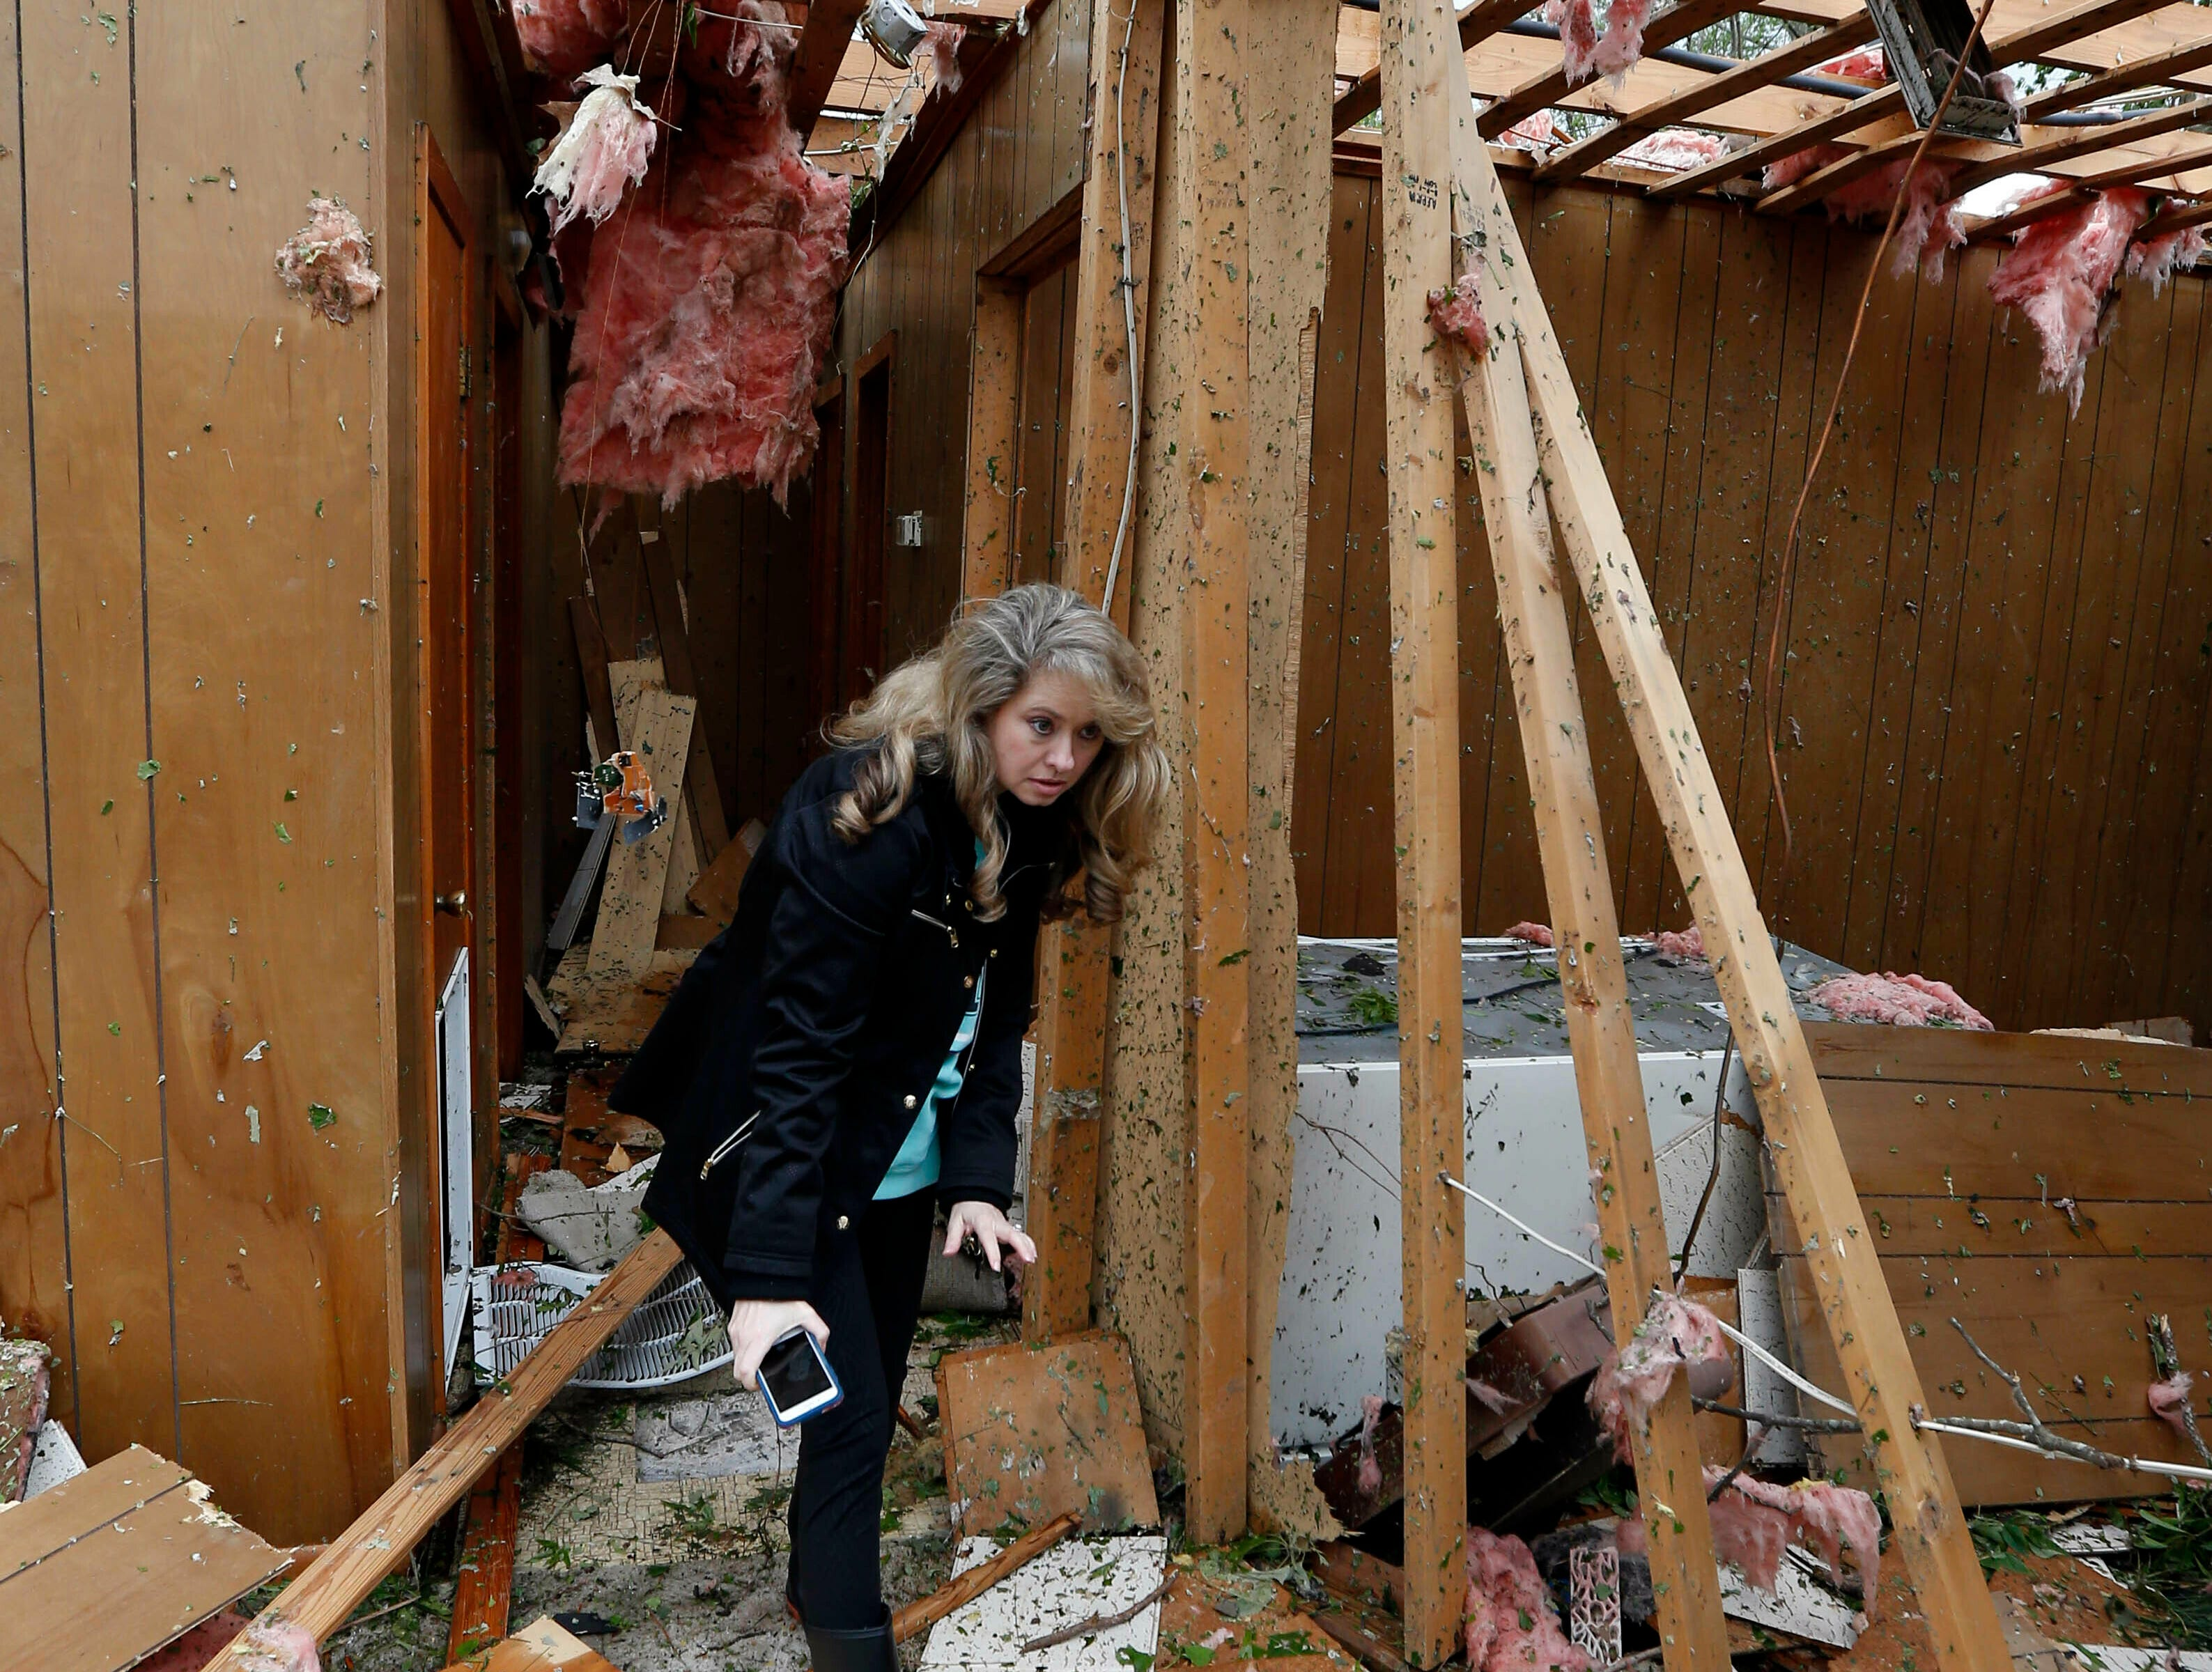 Tammy Phillips, walks through her storm damaged mother's house, Friday, April 19, 2019, in Morton, Miss. The house, unoccupied for about a year, was destroyed by a possible tornado Thursday afternoon. Strong storms again roared across the South on Thursday, topping trees and leaving a variety of damage in Mississippi, Louisiana and Texas. (AP Photo/Rogelio V. Solis)